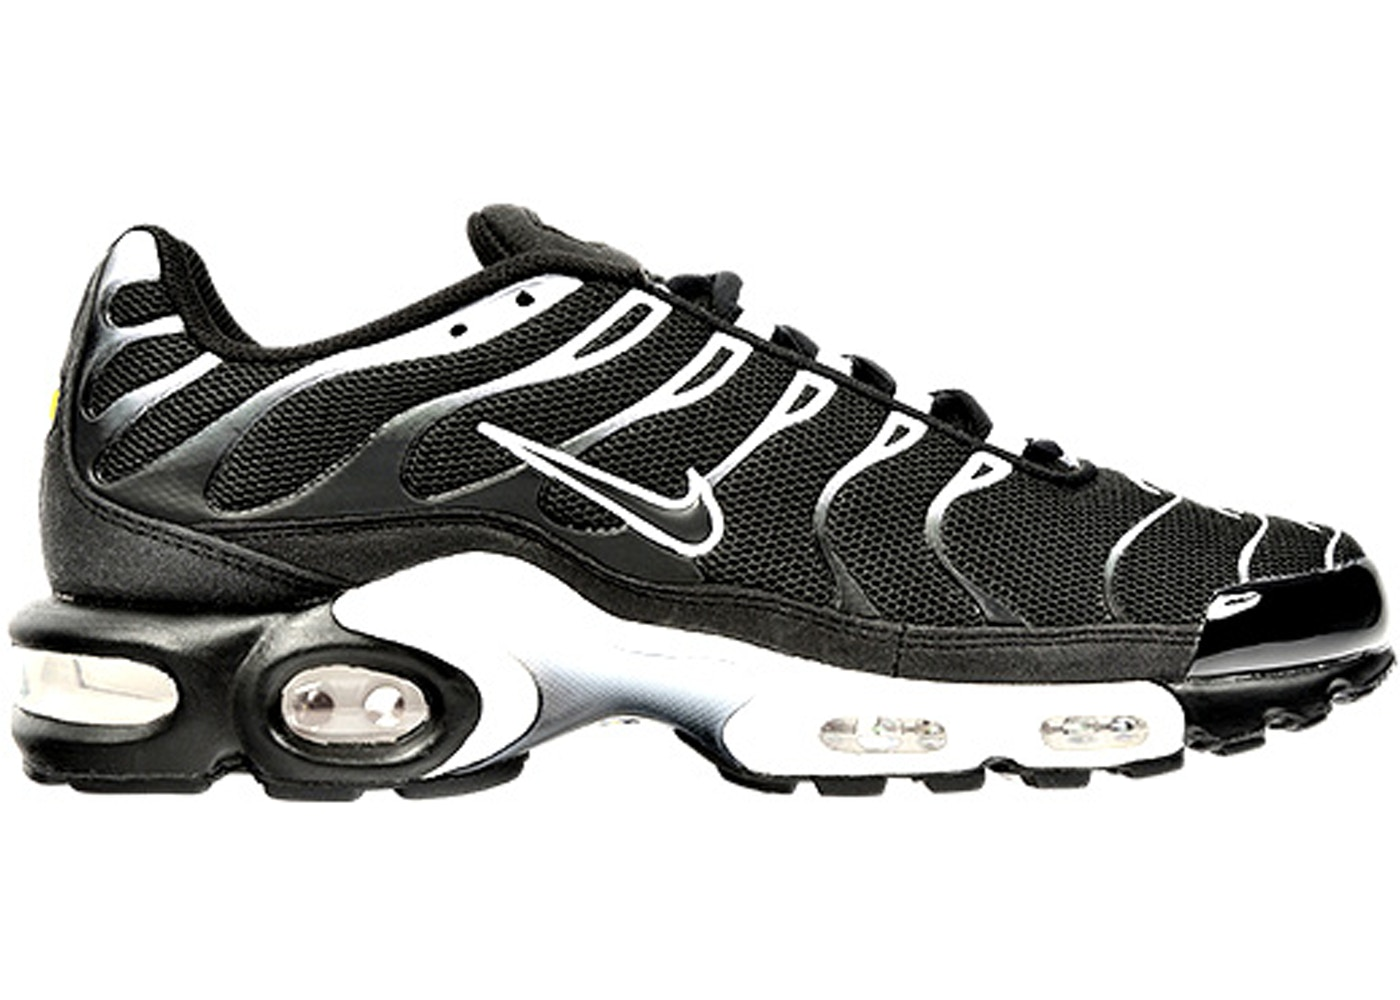 Nike Air Max Plus Frost Black White - Sneakers